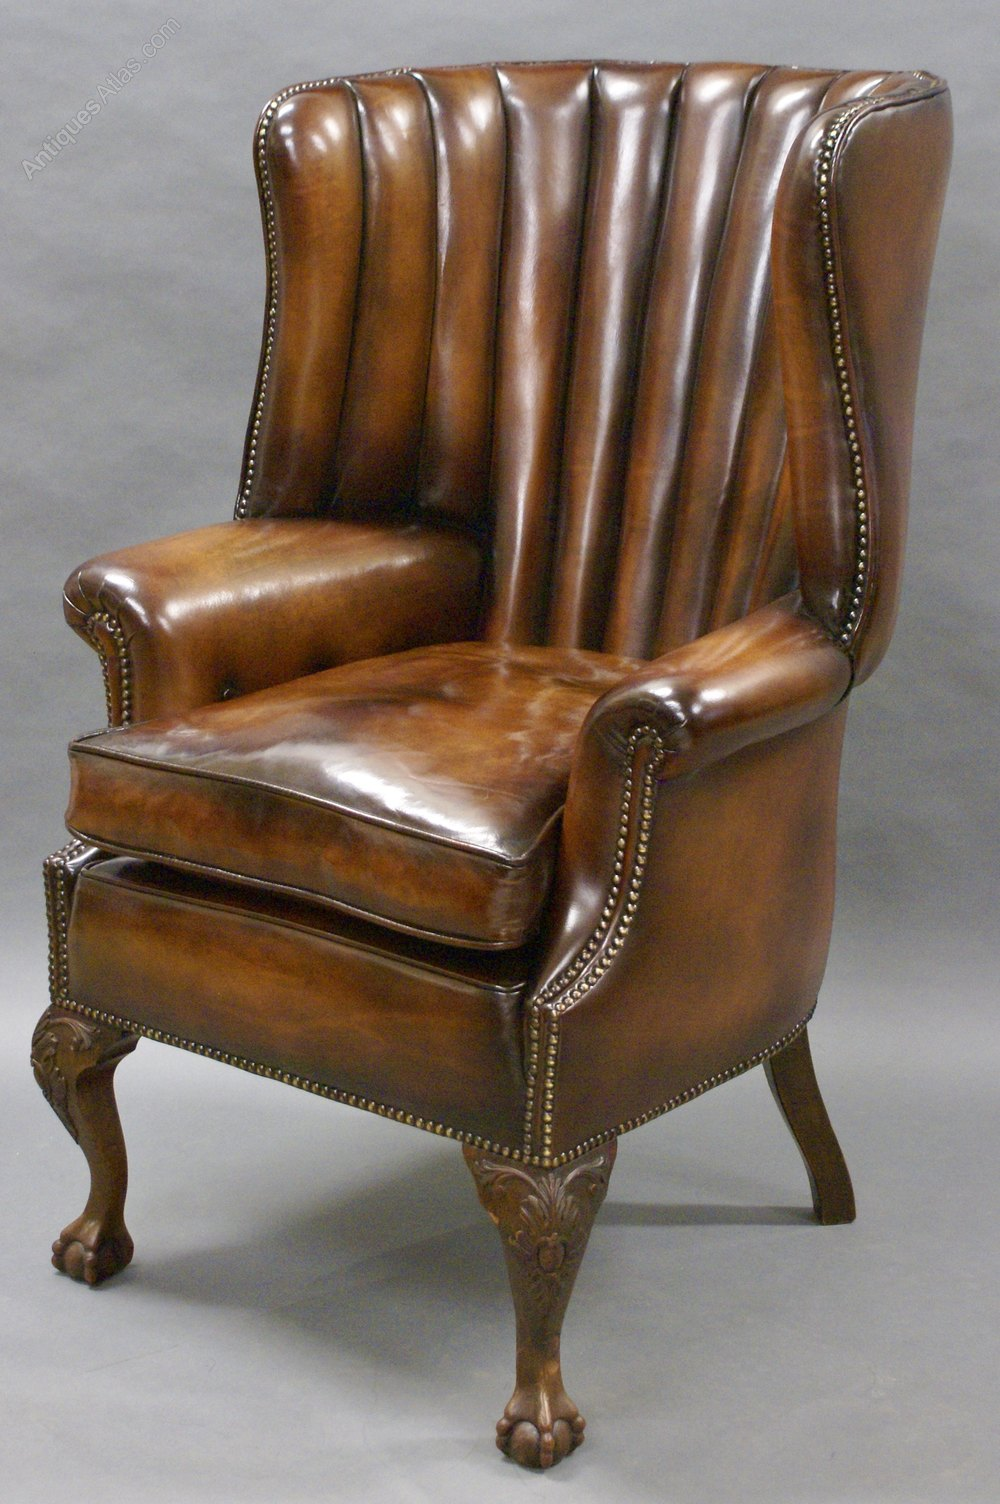 A George Ii Style Leather Upholstered Wing Chair